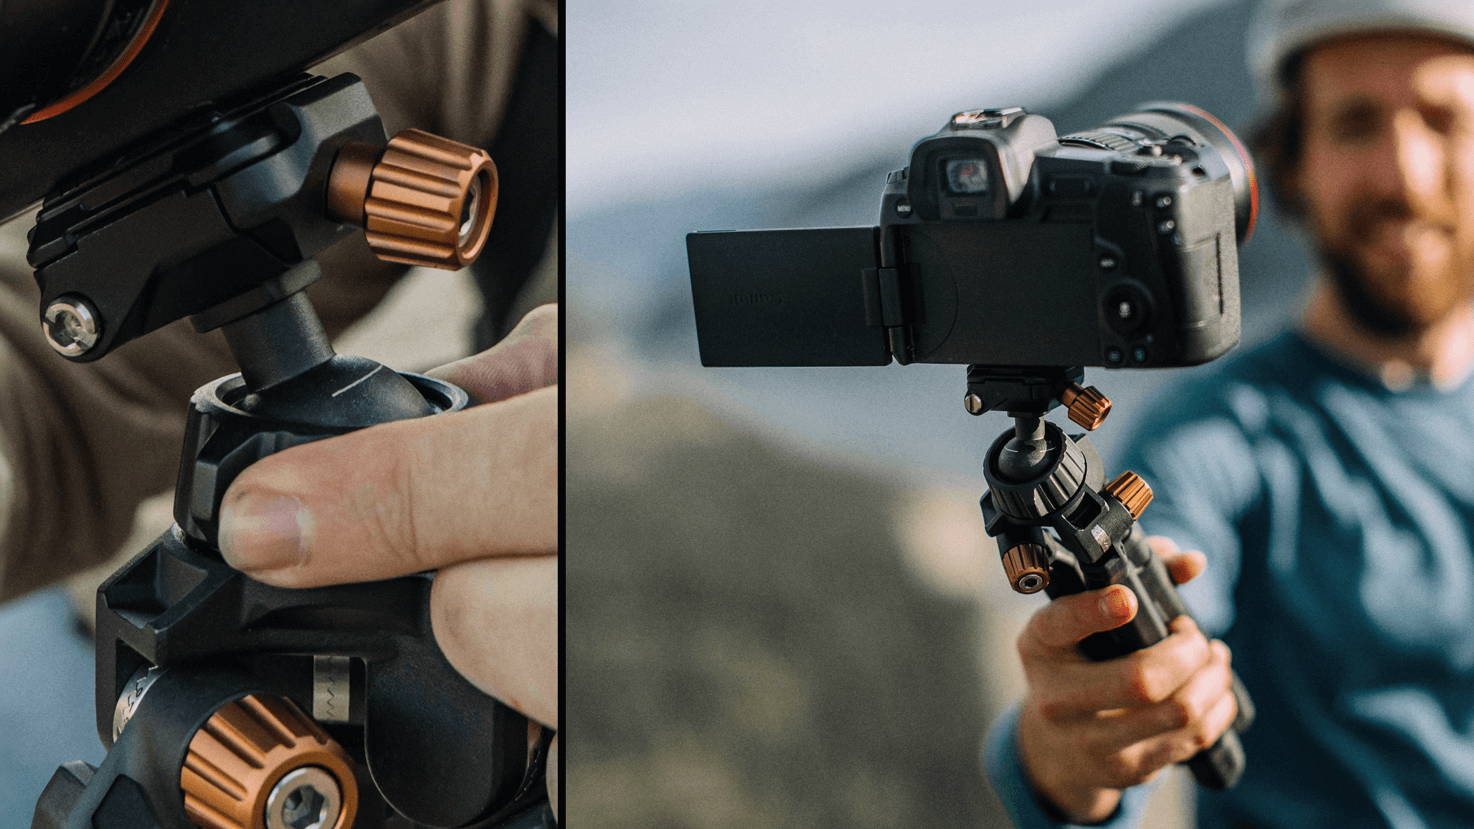 Integrated Ball-Head to achieve your ideal camera angle.